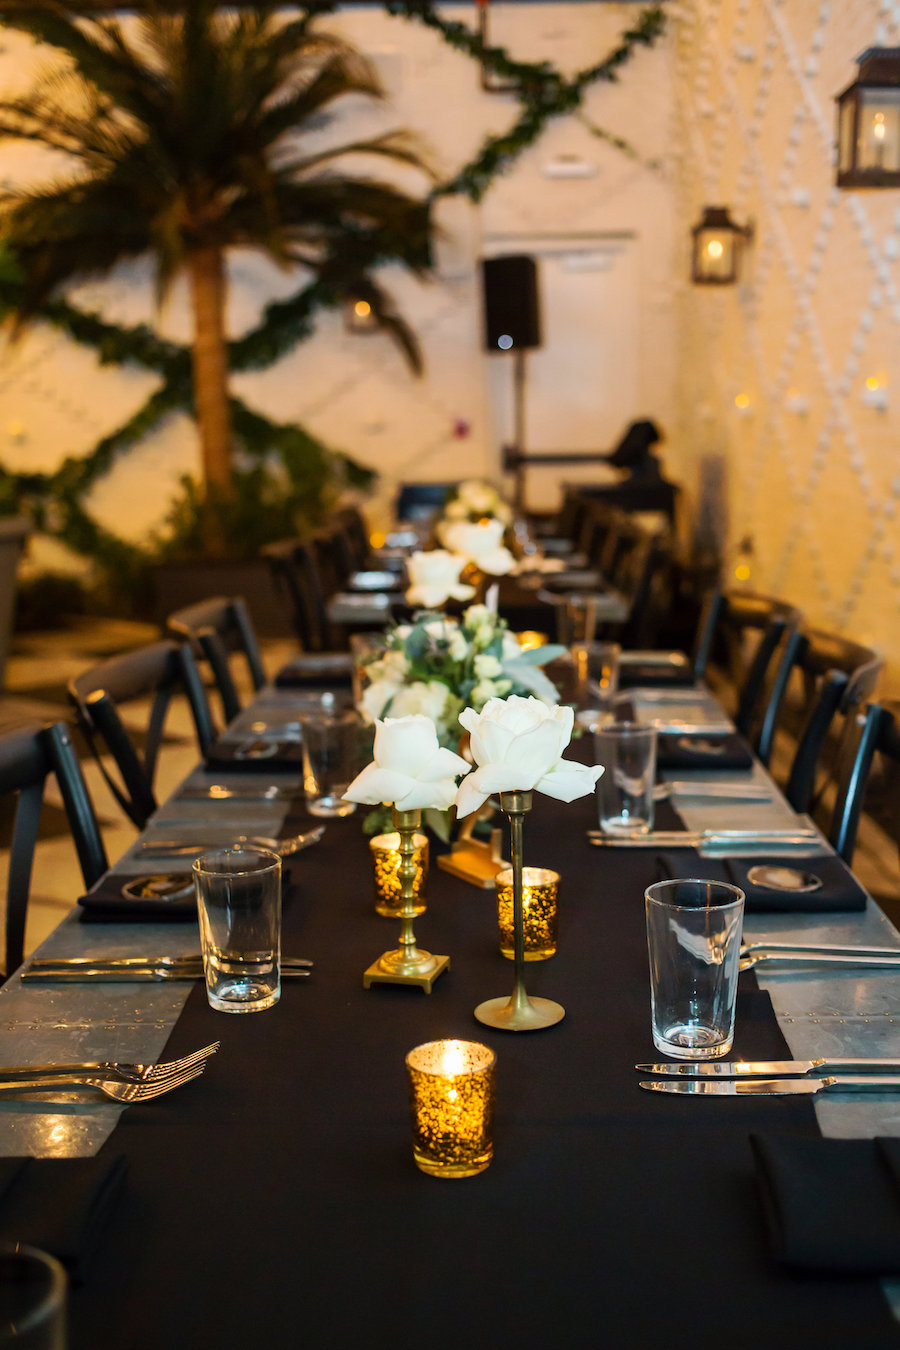 Vintage Inspired Wedding Reception with Black, Gold and Ivory Centerpieces on Long Feasting Tables